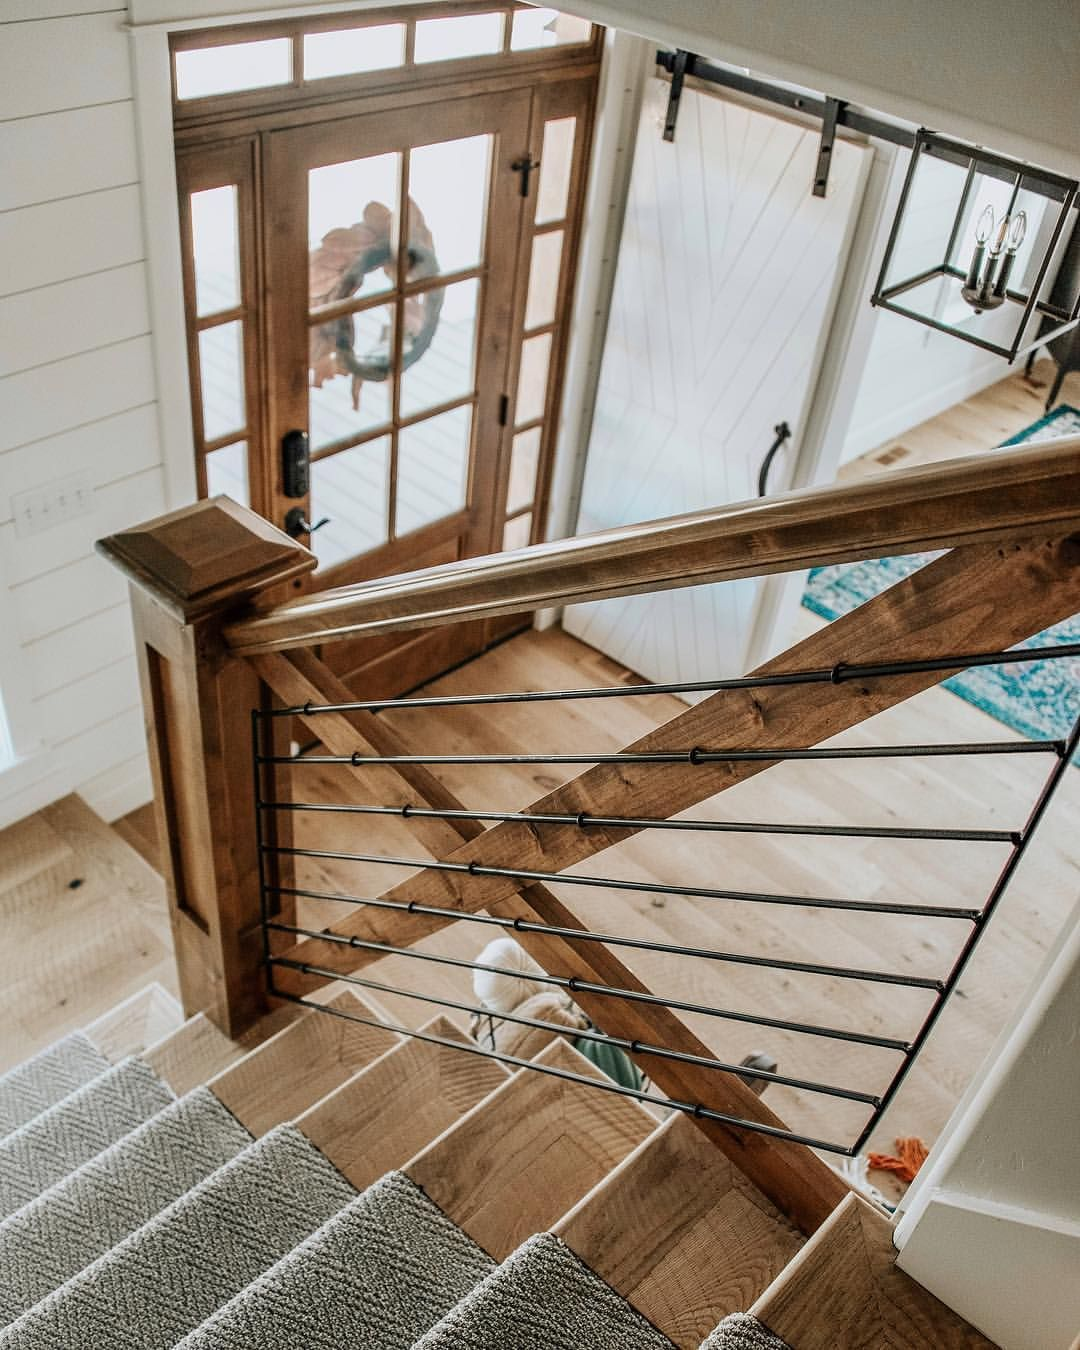 "Bree | White Sparrow Farm on Instagram: ""My dream entry way (and Pinterest board) before building included: a wood door, a transom window, X railing, L stair case, a stair runner…"" #staircaseideas"